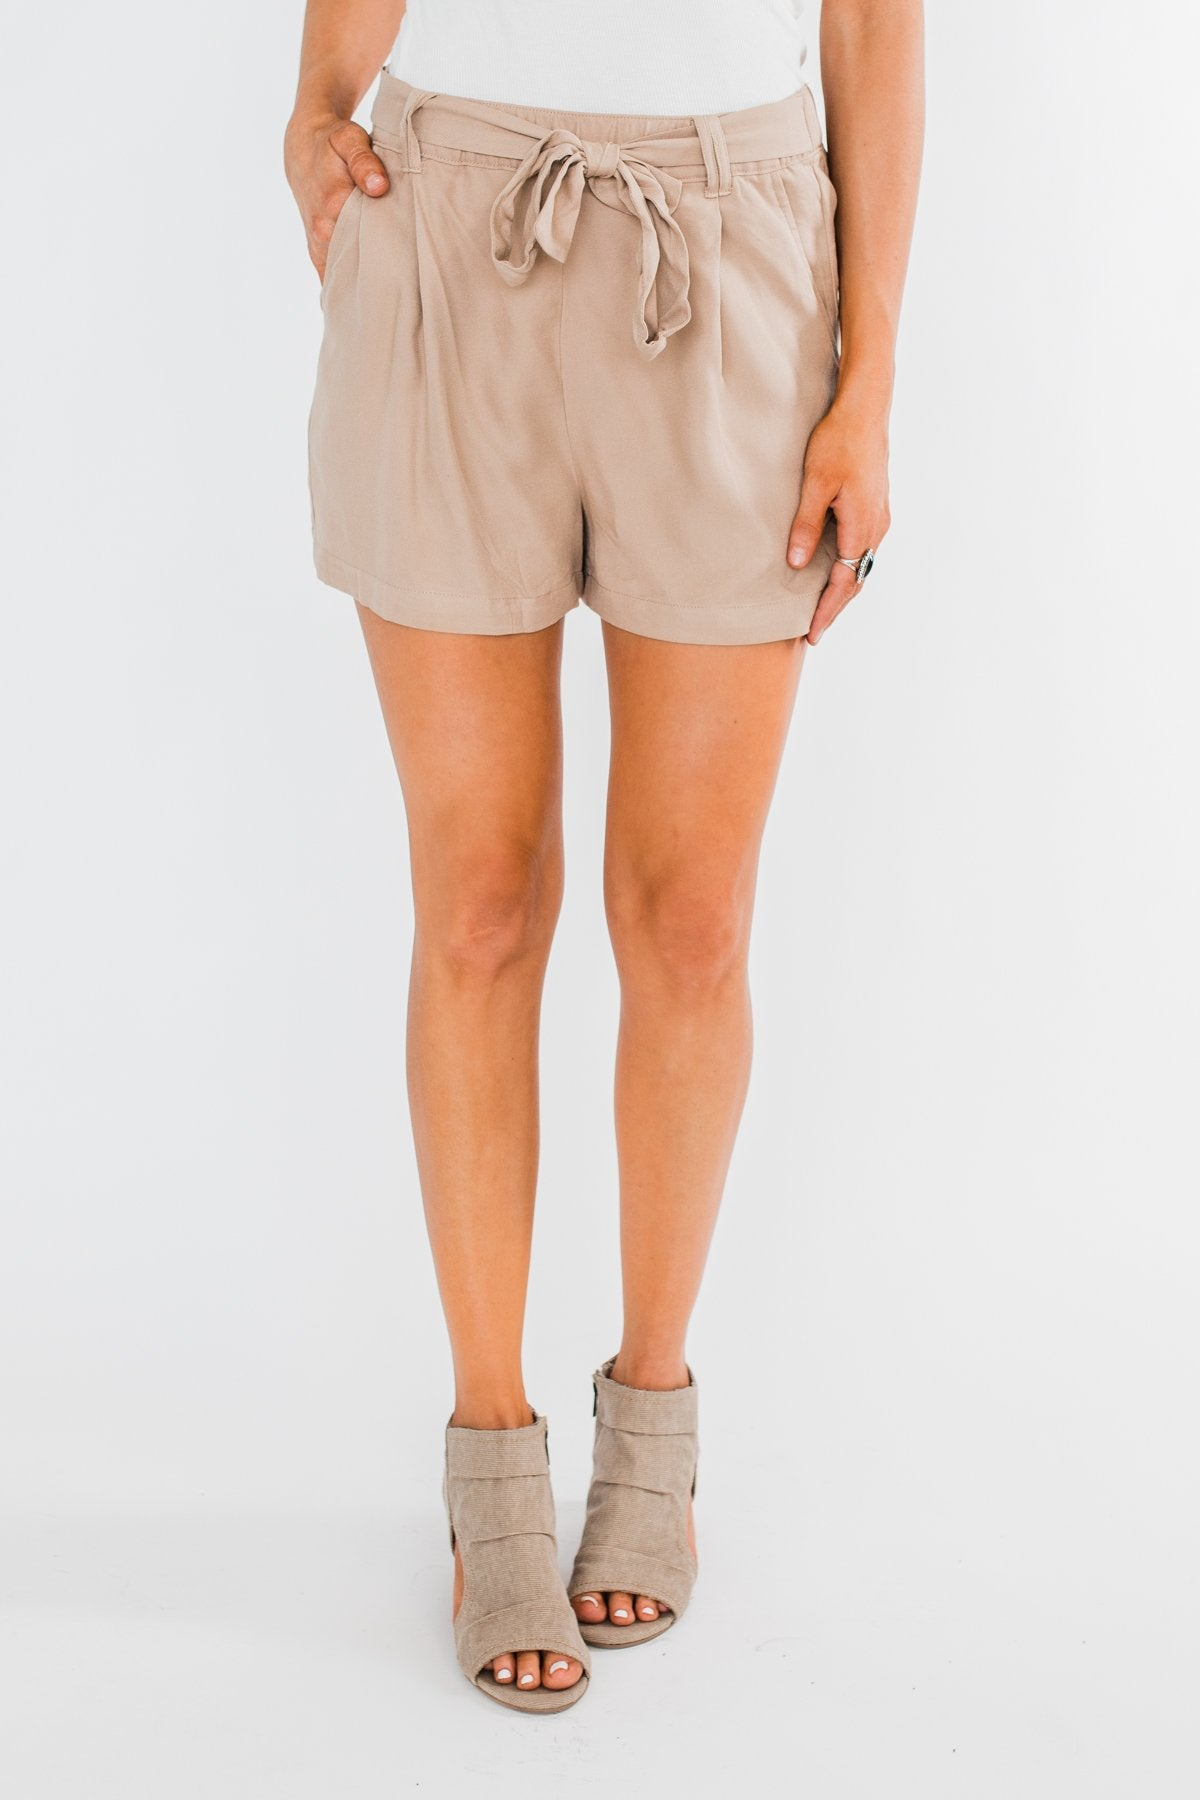 Elastic Waist Tie Shorts- Taupe